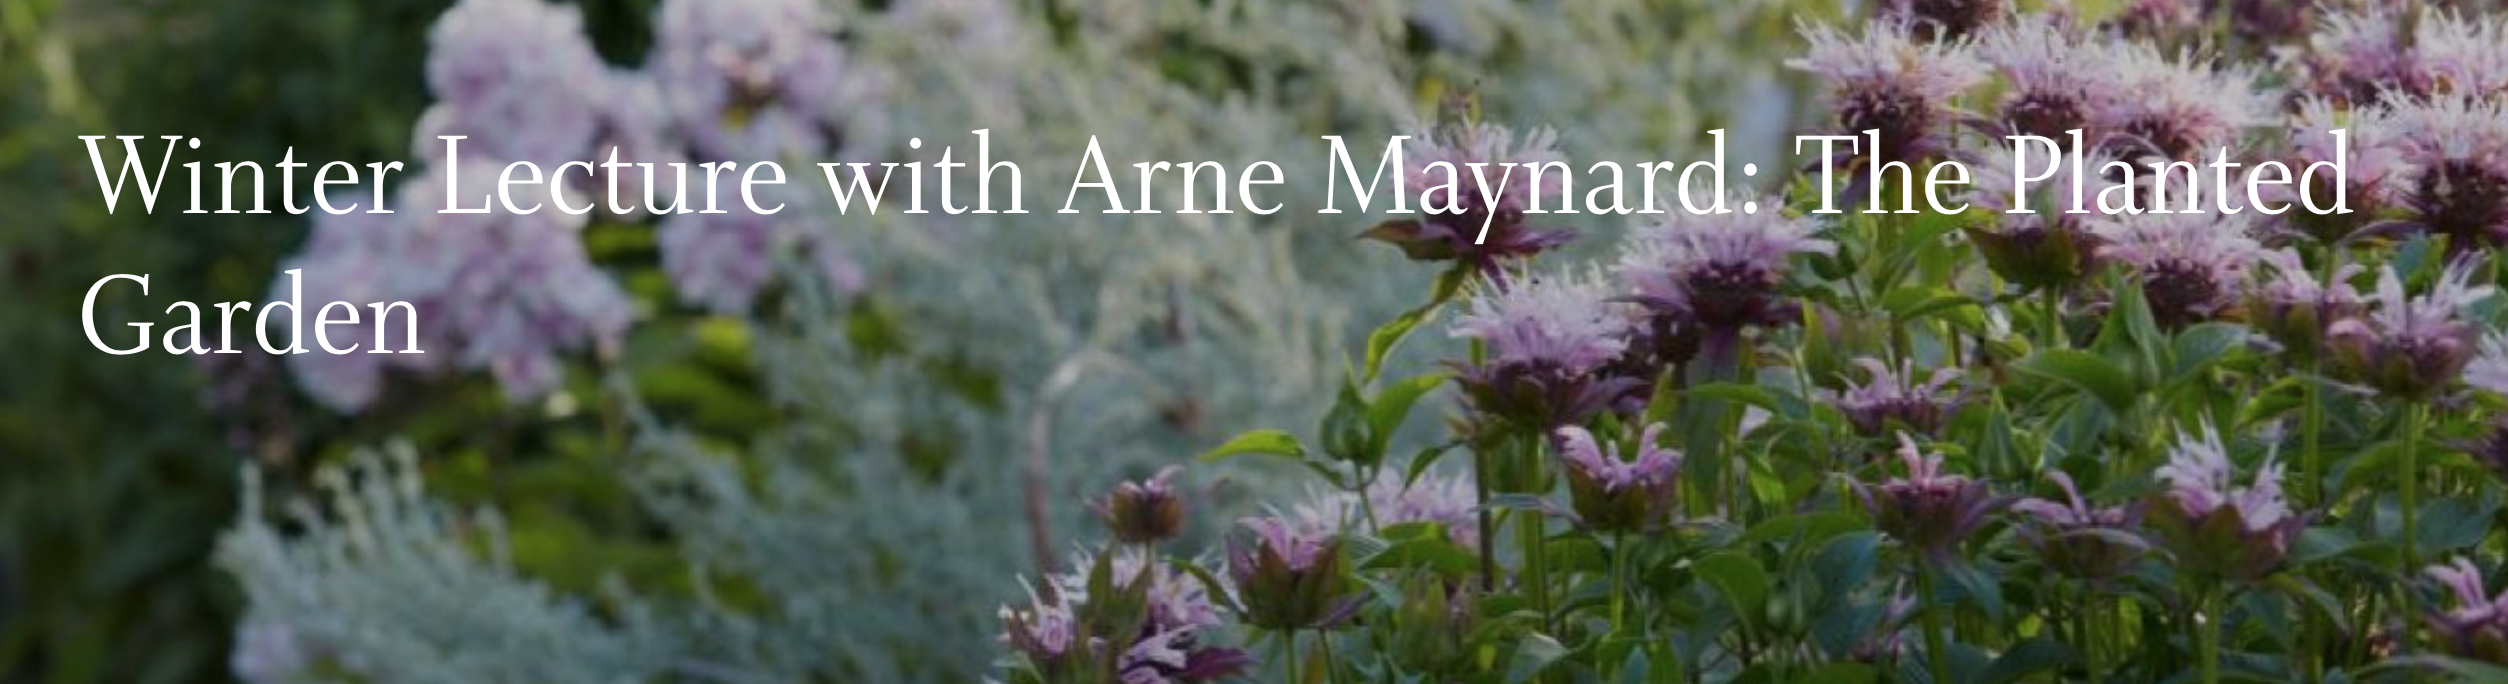 Winter Lecture With Arne Maynard The Planted Garden Berkshire